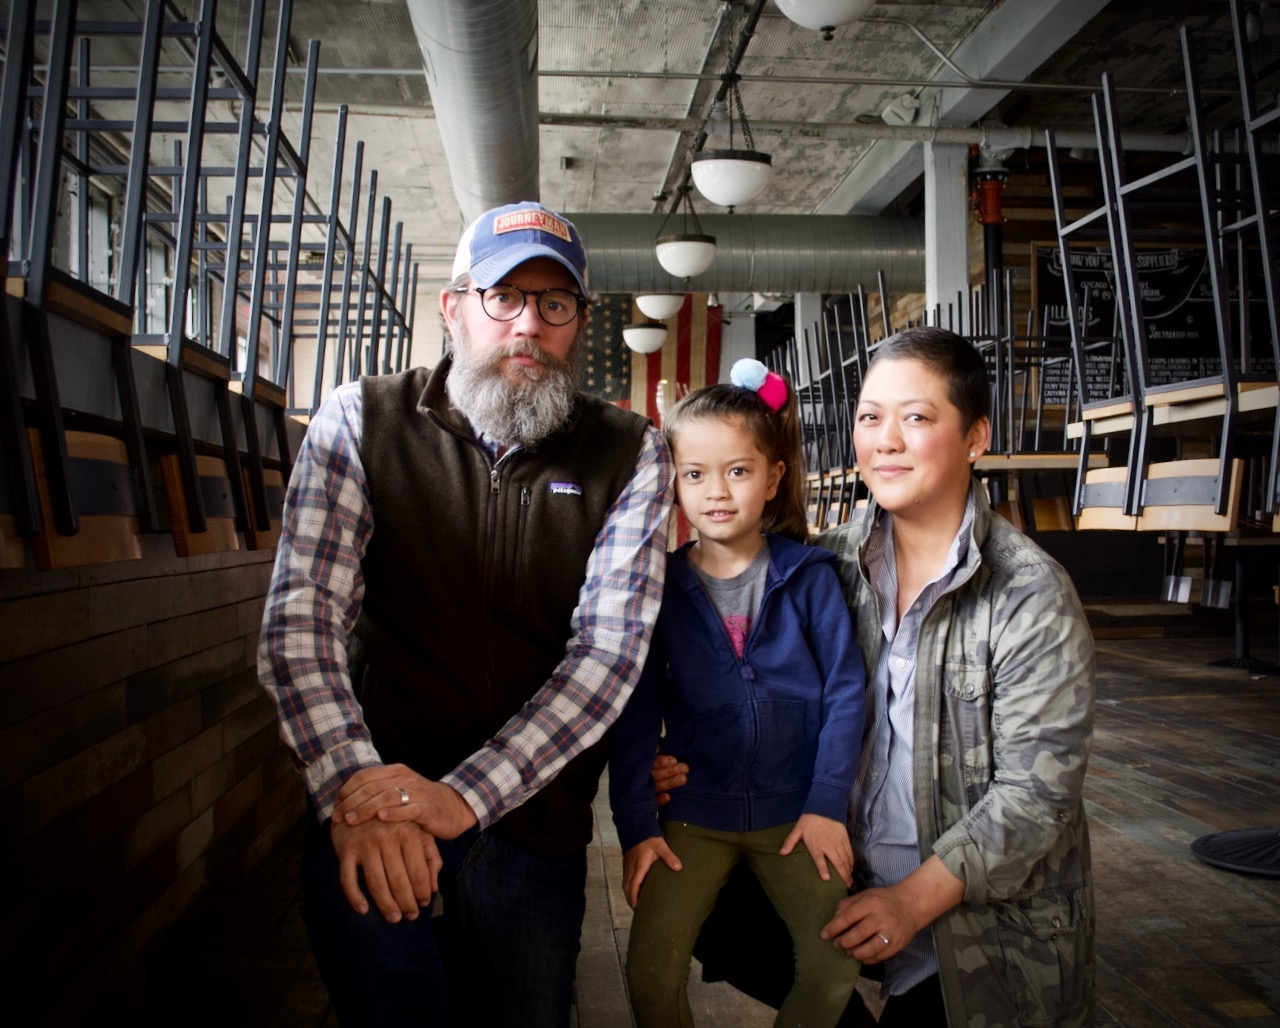 Bill and Johanna Welter, founders of Journeyman Distillery, and their daughter Islay.